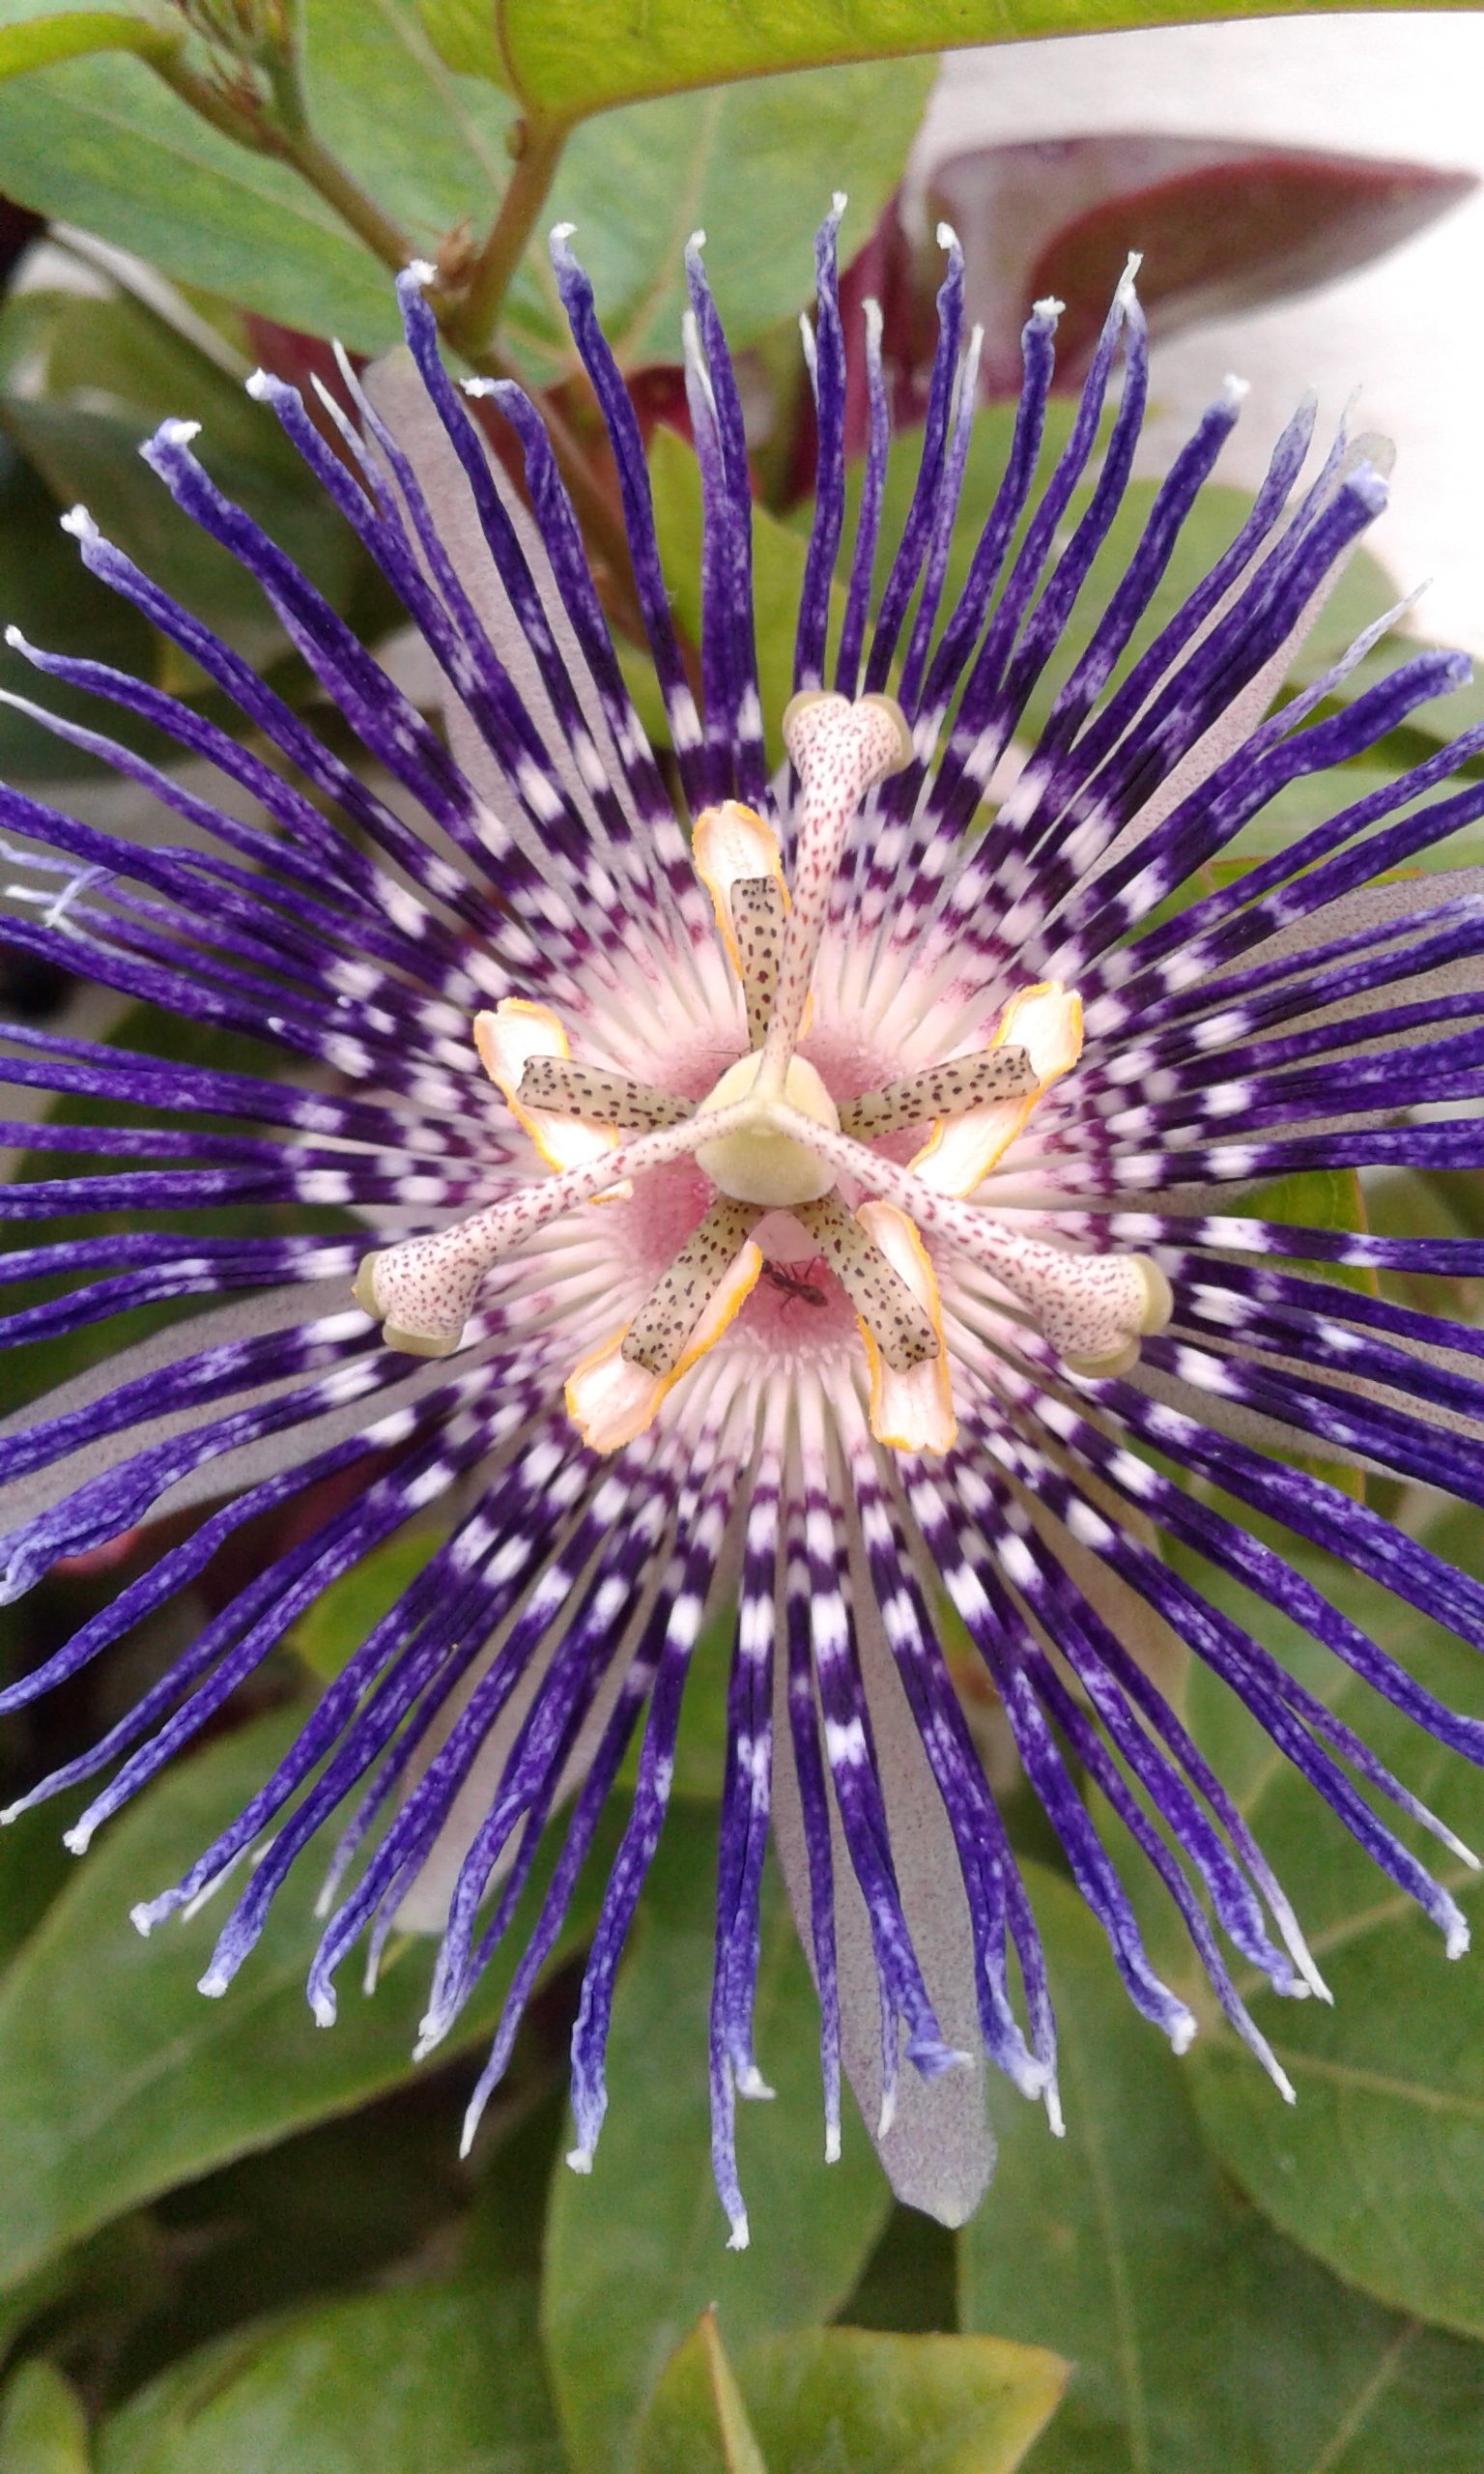 close-up of a blooming flower